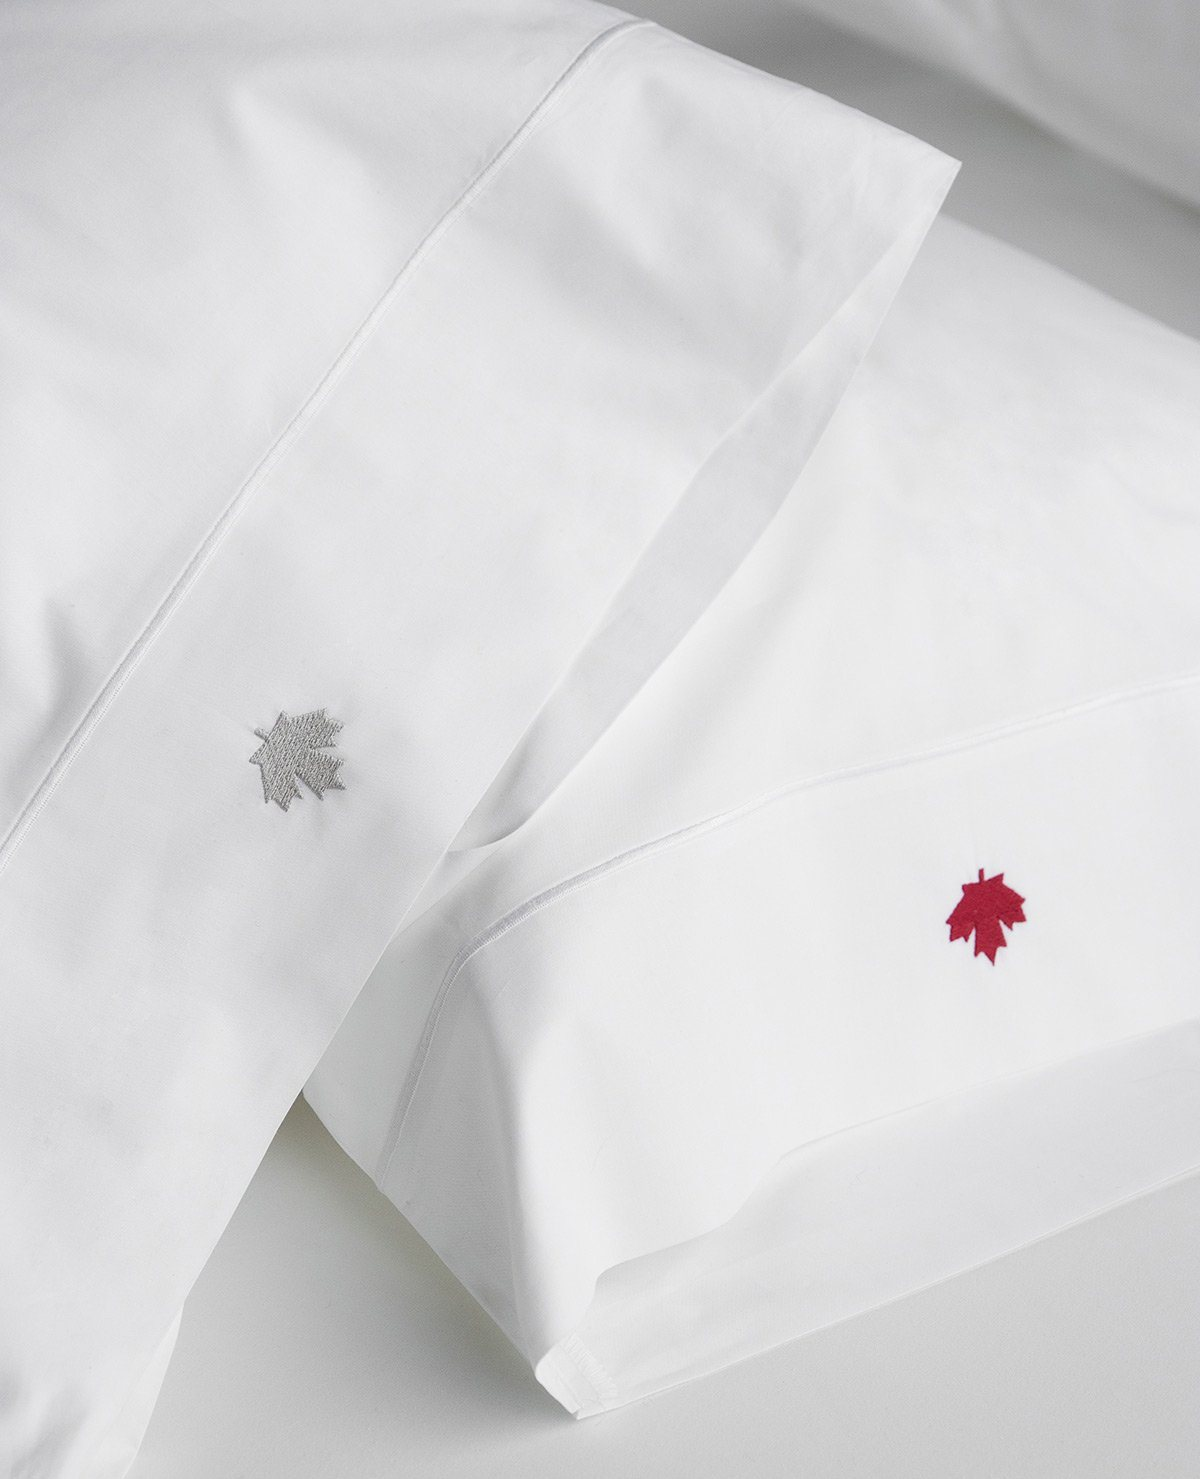 Maple%20Leaf%20Embroidered%20Pillow%20Cases%20-%20Limited%20Edition